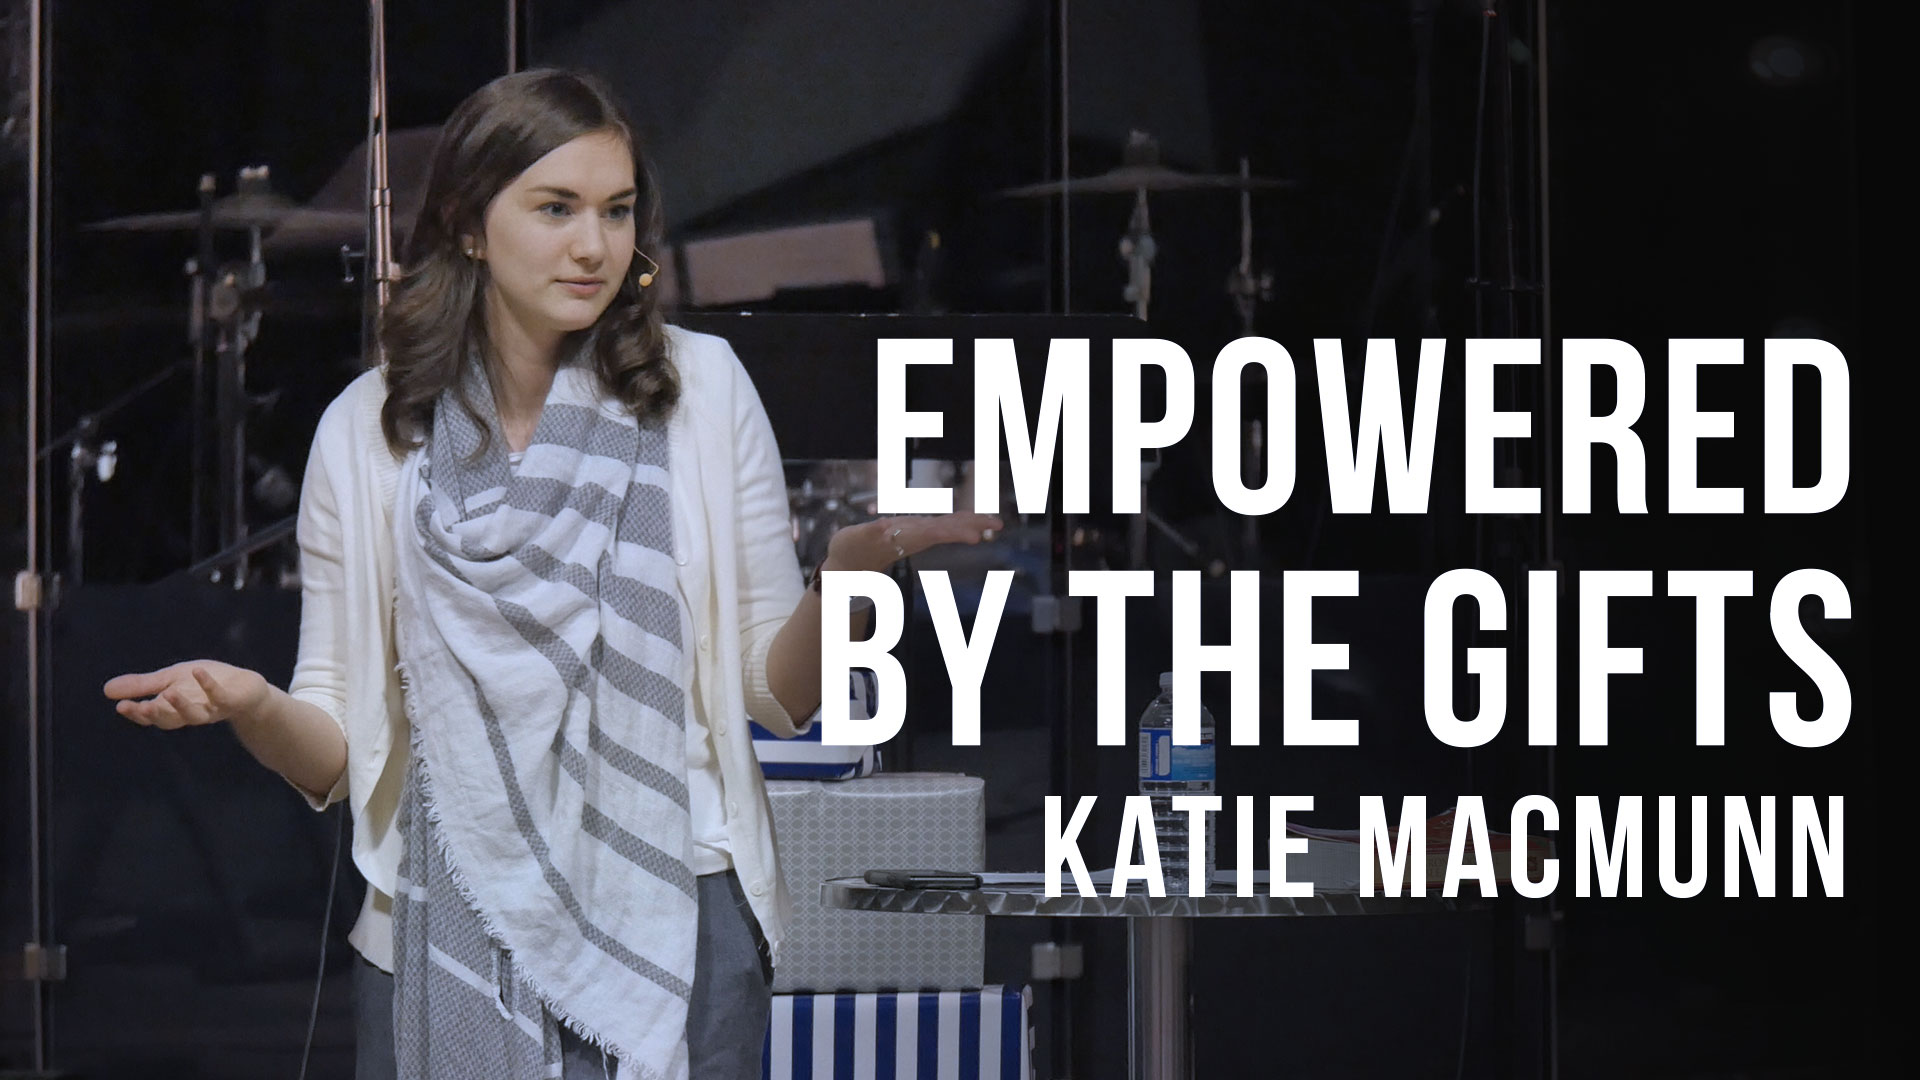 Empowered by the gifts